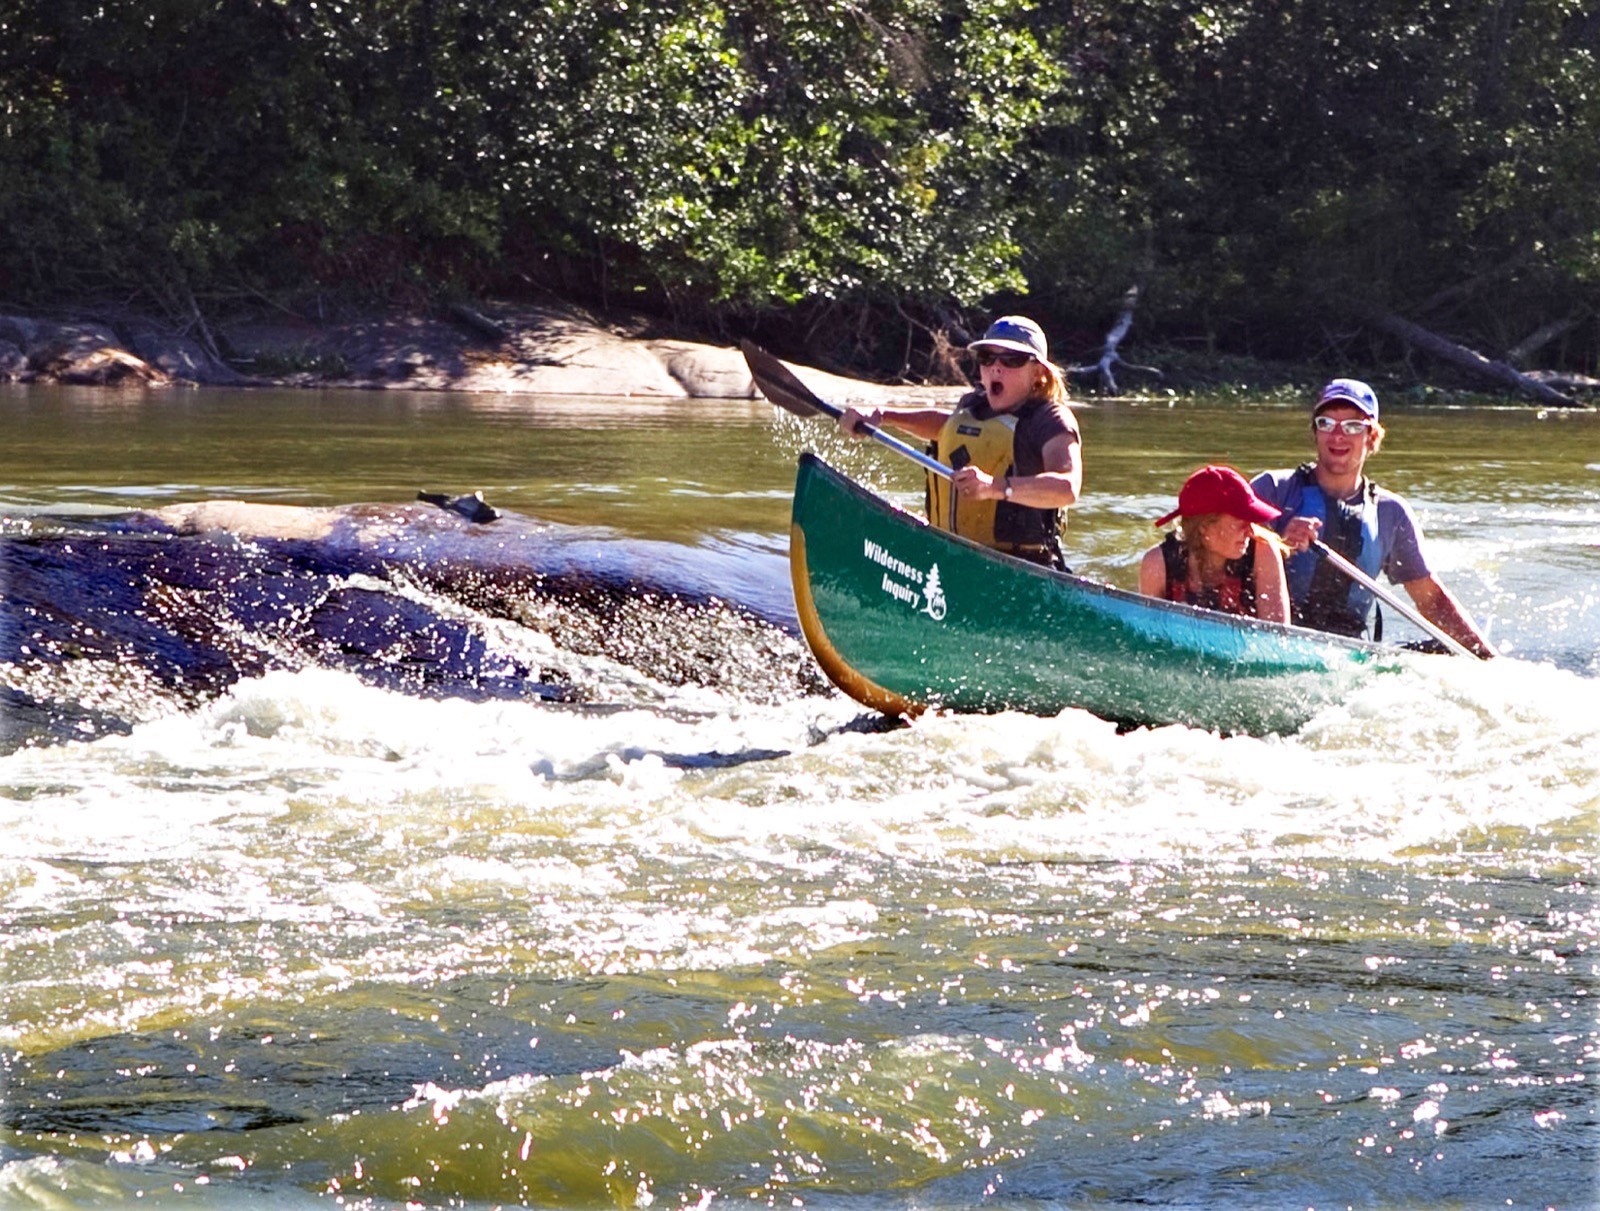 Manitoba's Grass River Canoe Expedition